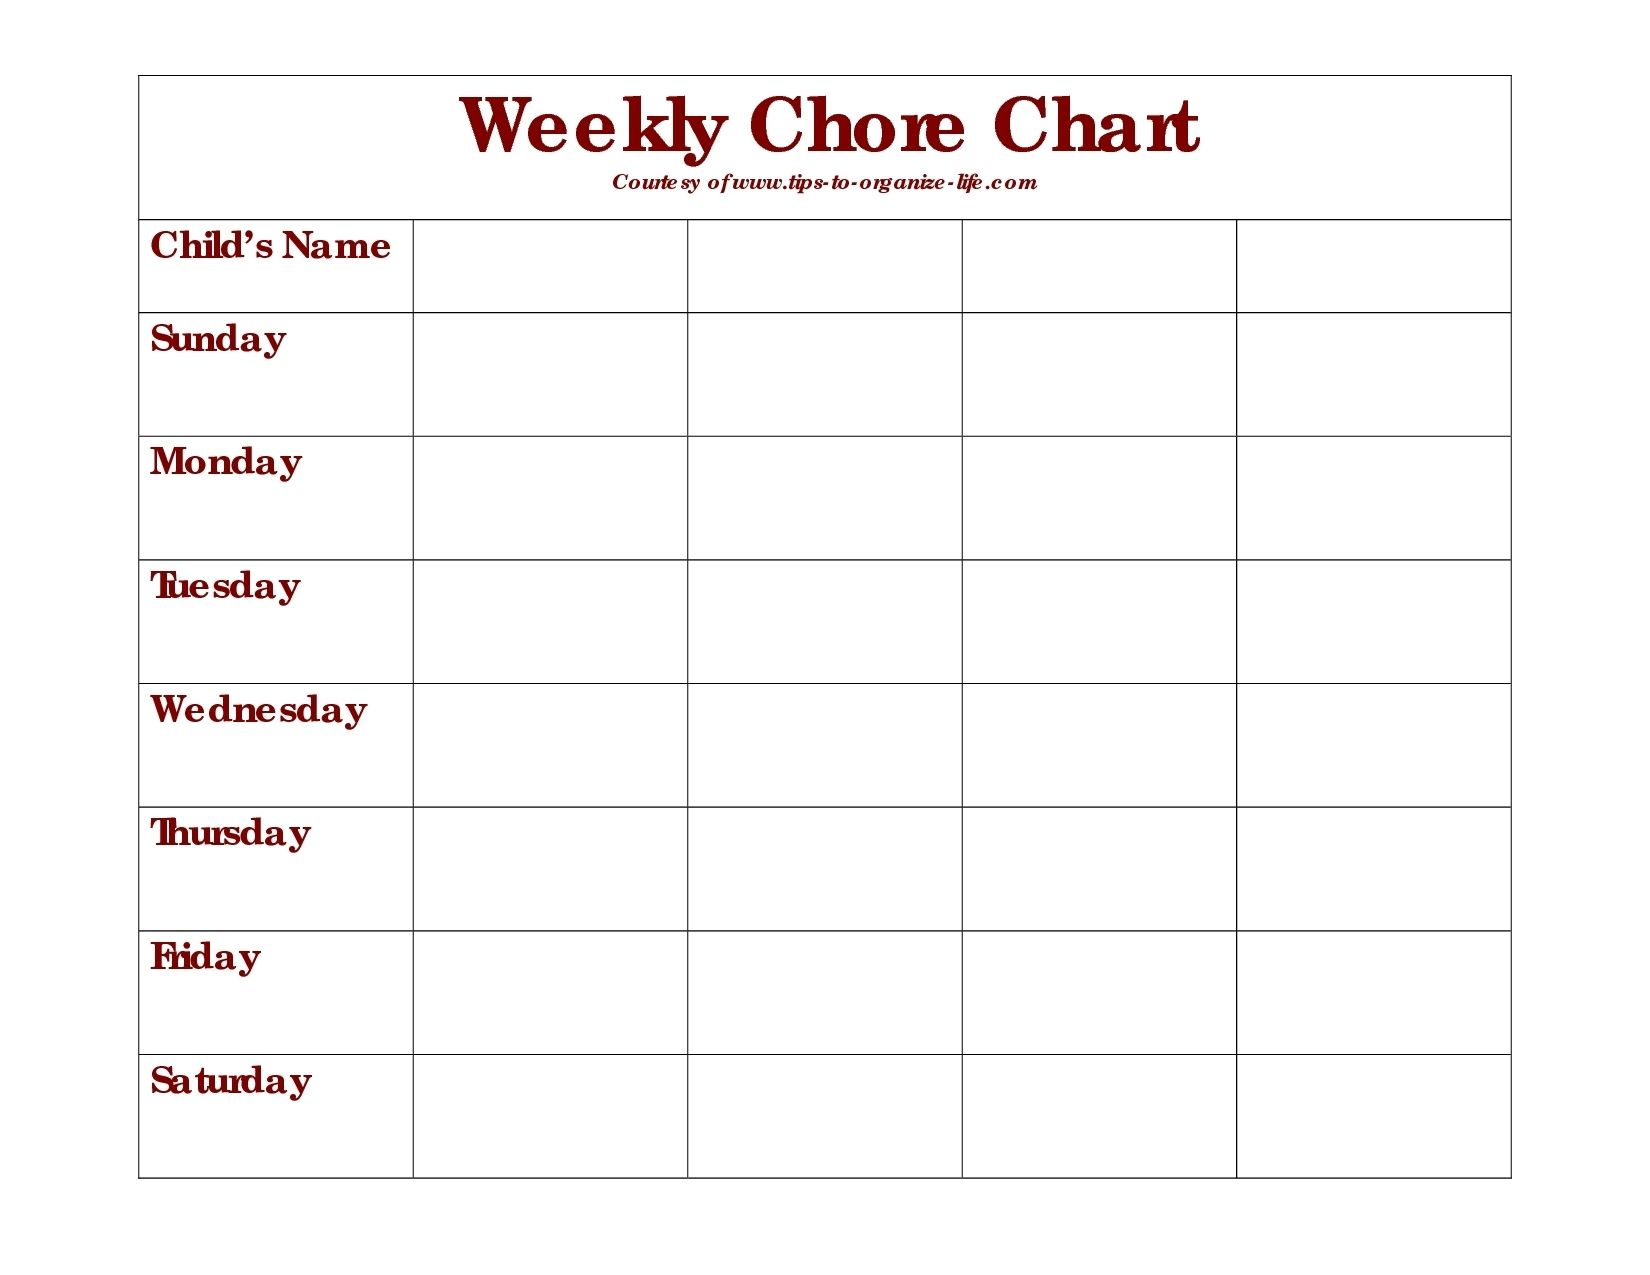 graphic relating to Printable Blank Chore Chart called Day-to-day Chore Chart Printable - Ibov.jonathandedecker inside of